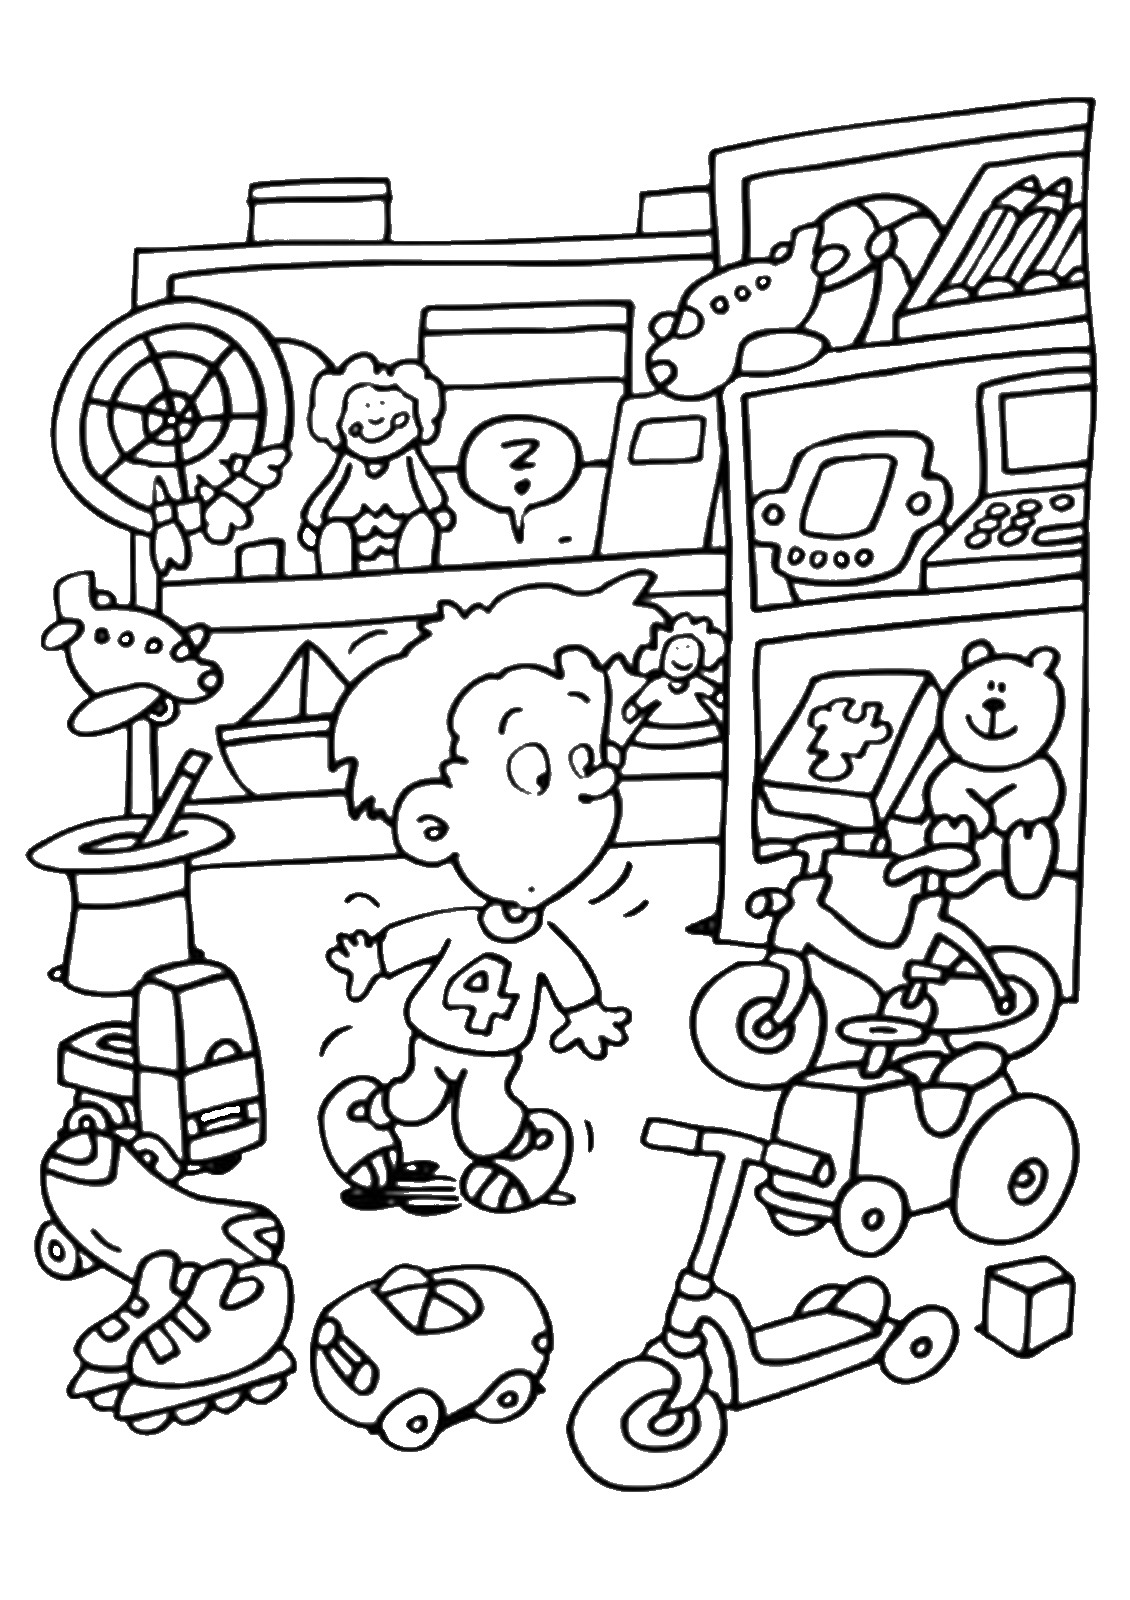 coloring toy worksheet toy story puzzles toy story free toys color activities worksheet toy coloring